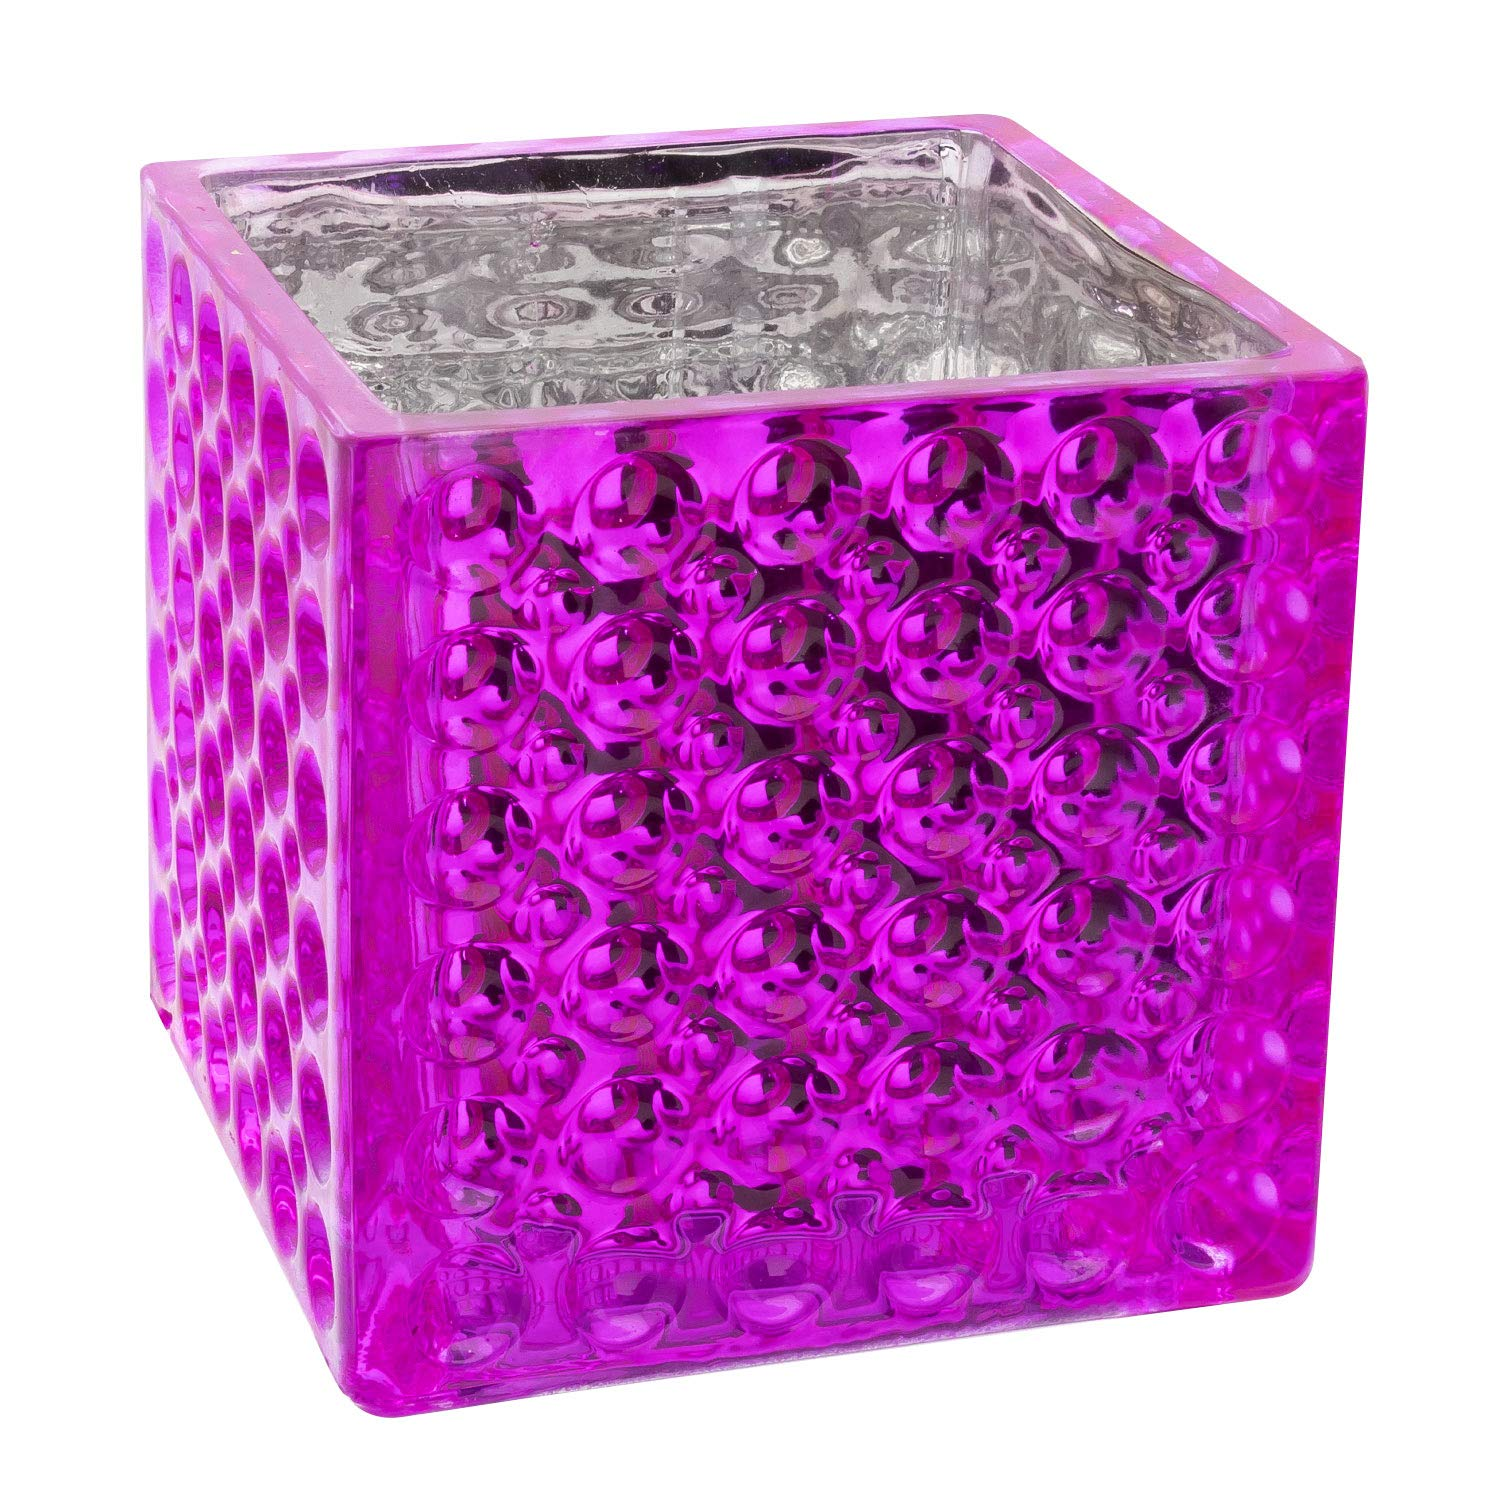 Royal Imports Flower Glass Vase Decorative Centerpiece for Home or Wedding Elegant Dimple Effect Cube, 5'' Tall, 5''x5'' Opening, Pink